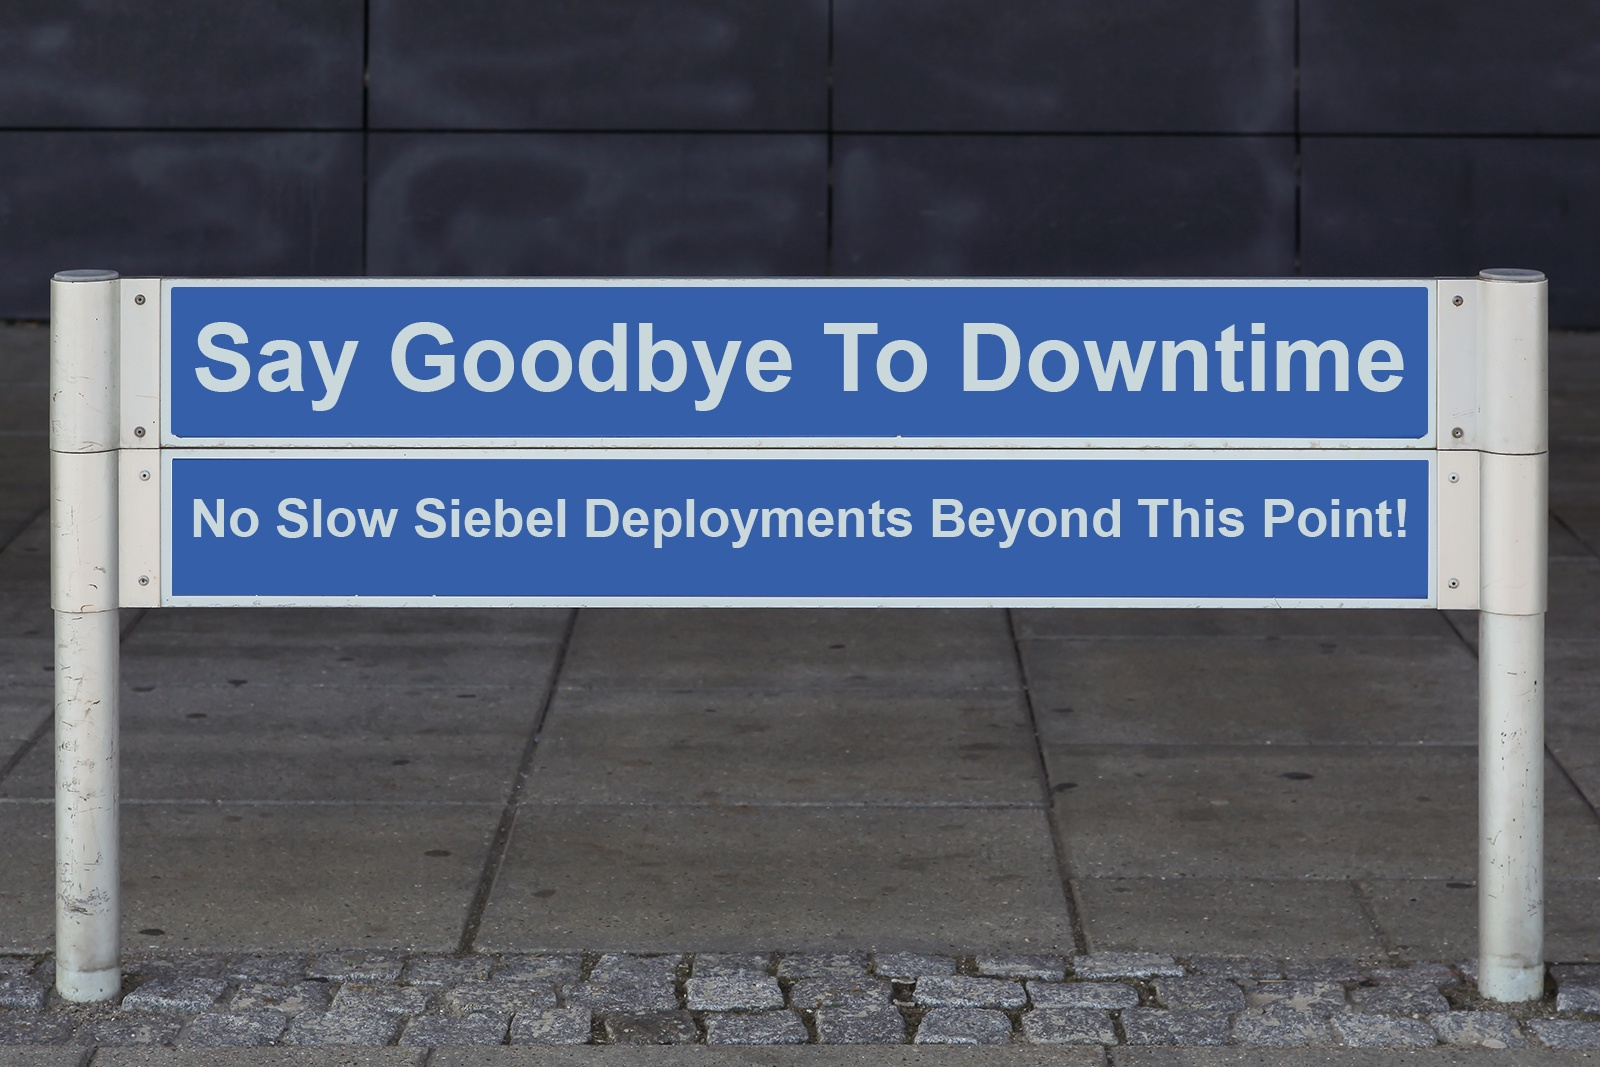 Announcing Zero Downtime for Siebel